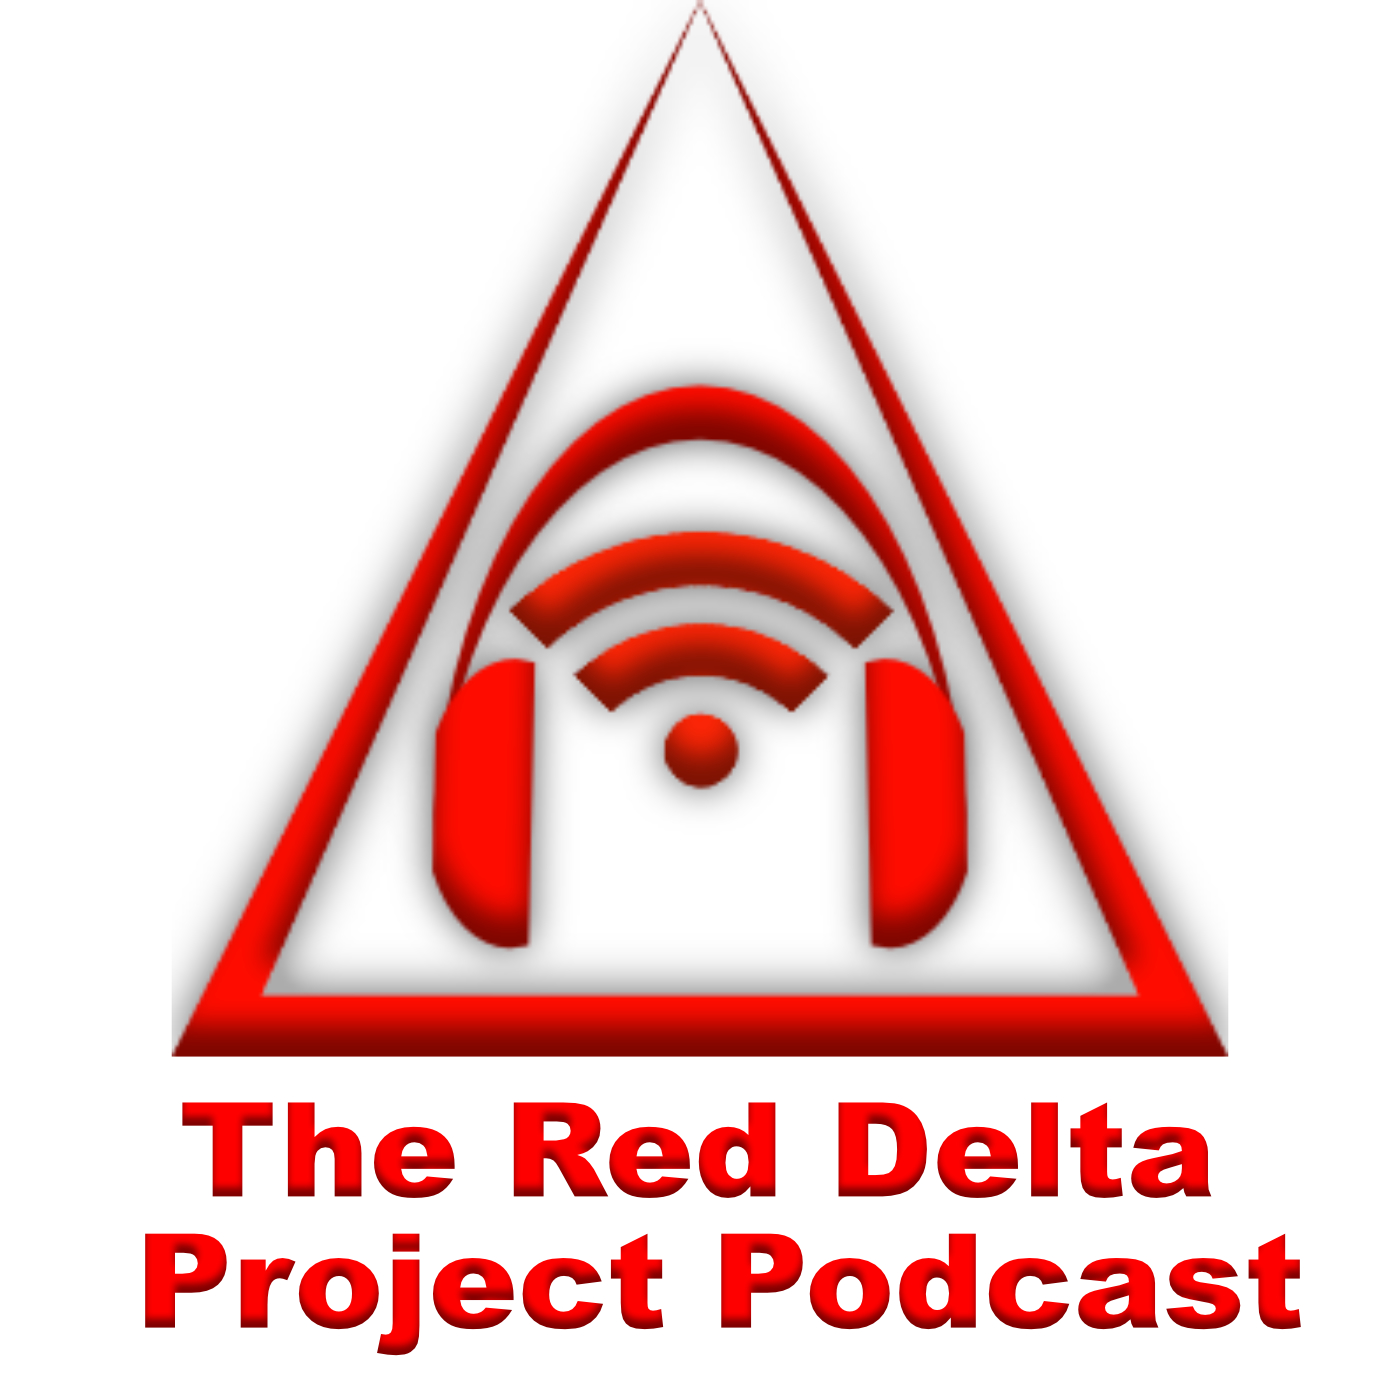 Red Delta Project Podcasts